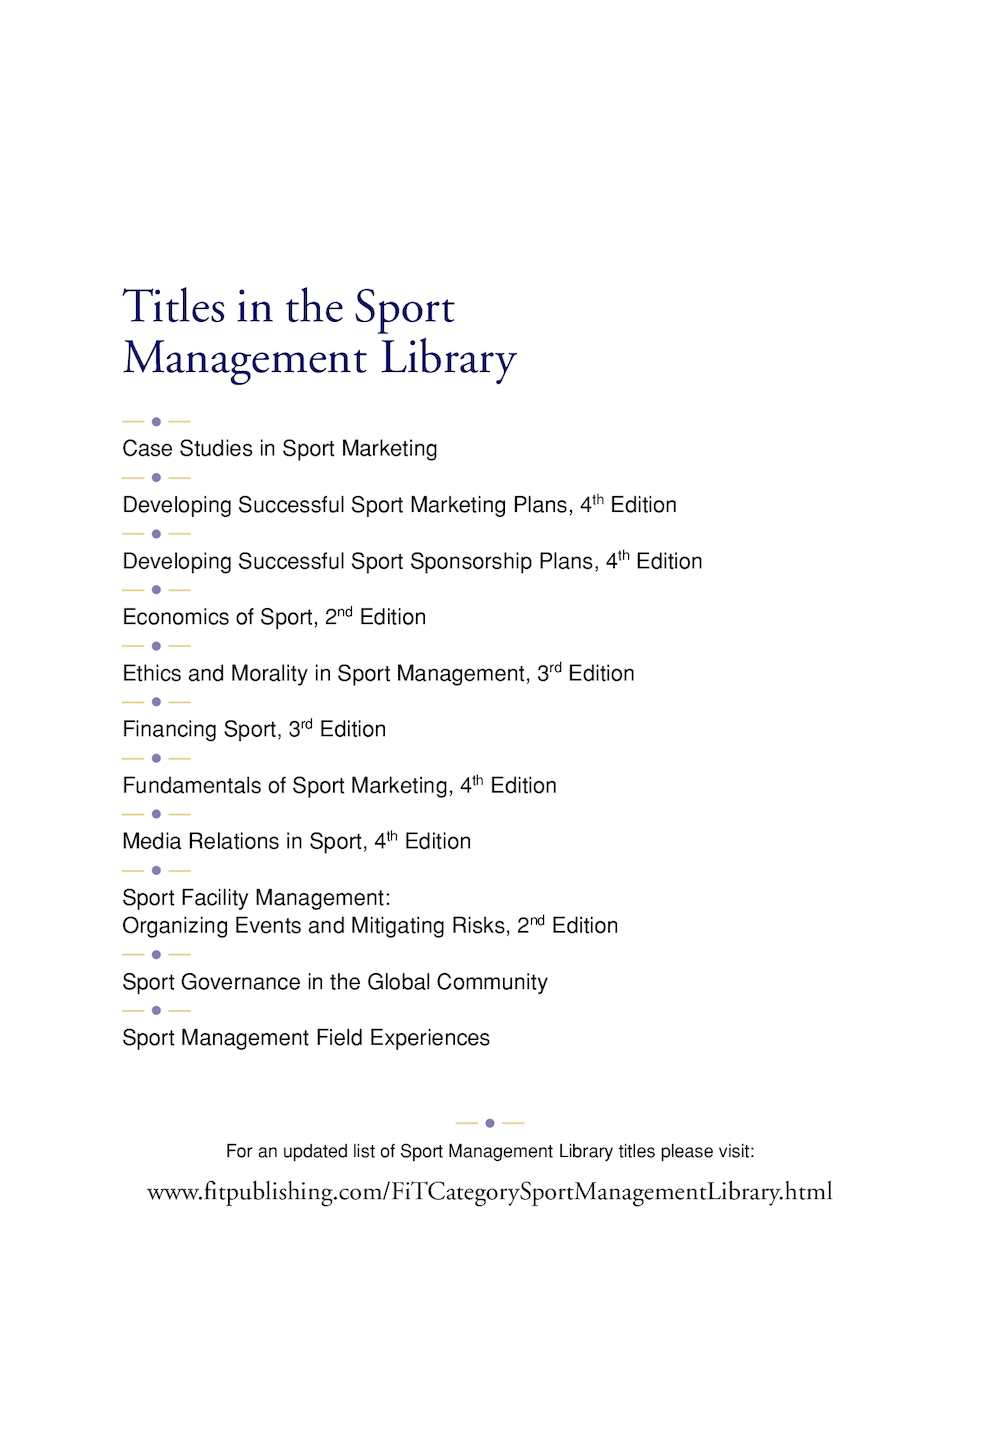 Managing sport facilities 2nd edition public assembly venue management sports array foundations sport management 3rd edition calameo downloader rh calameo download fandeluxe Images